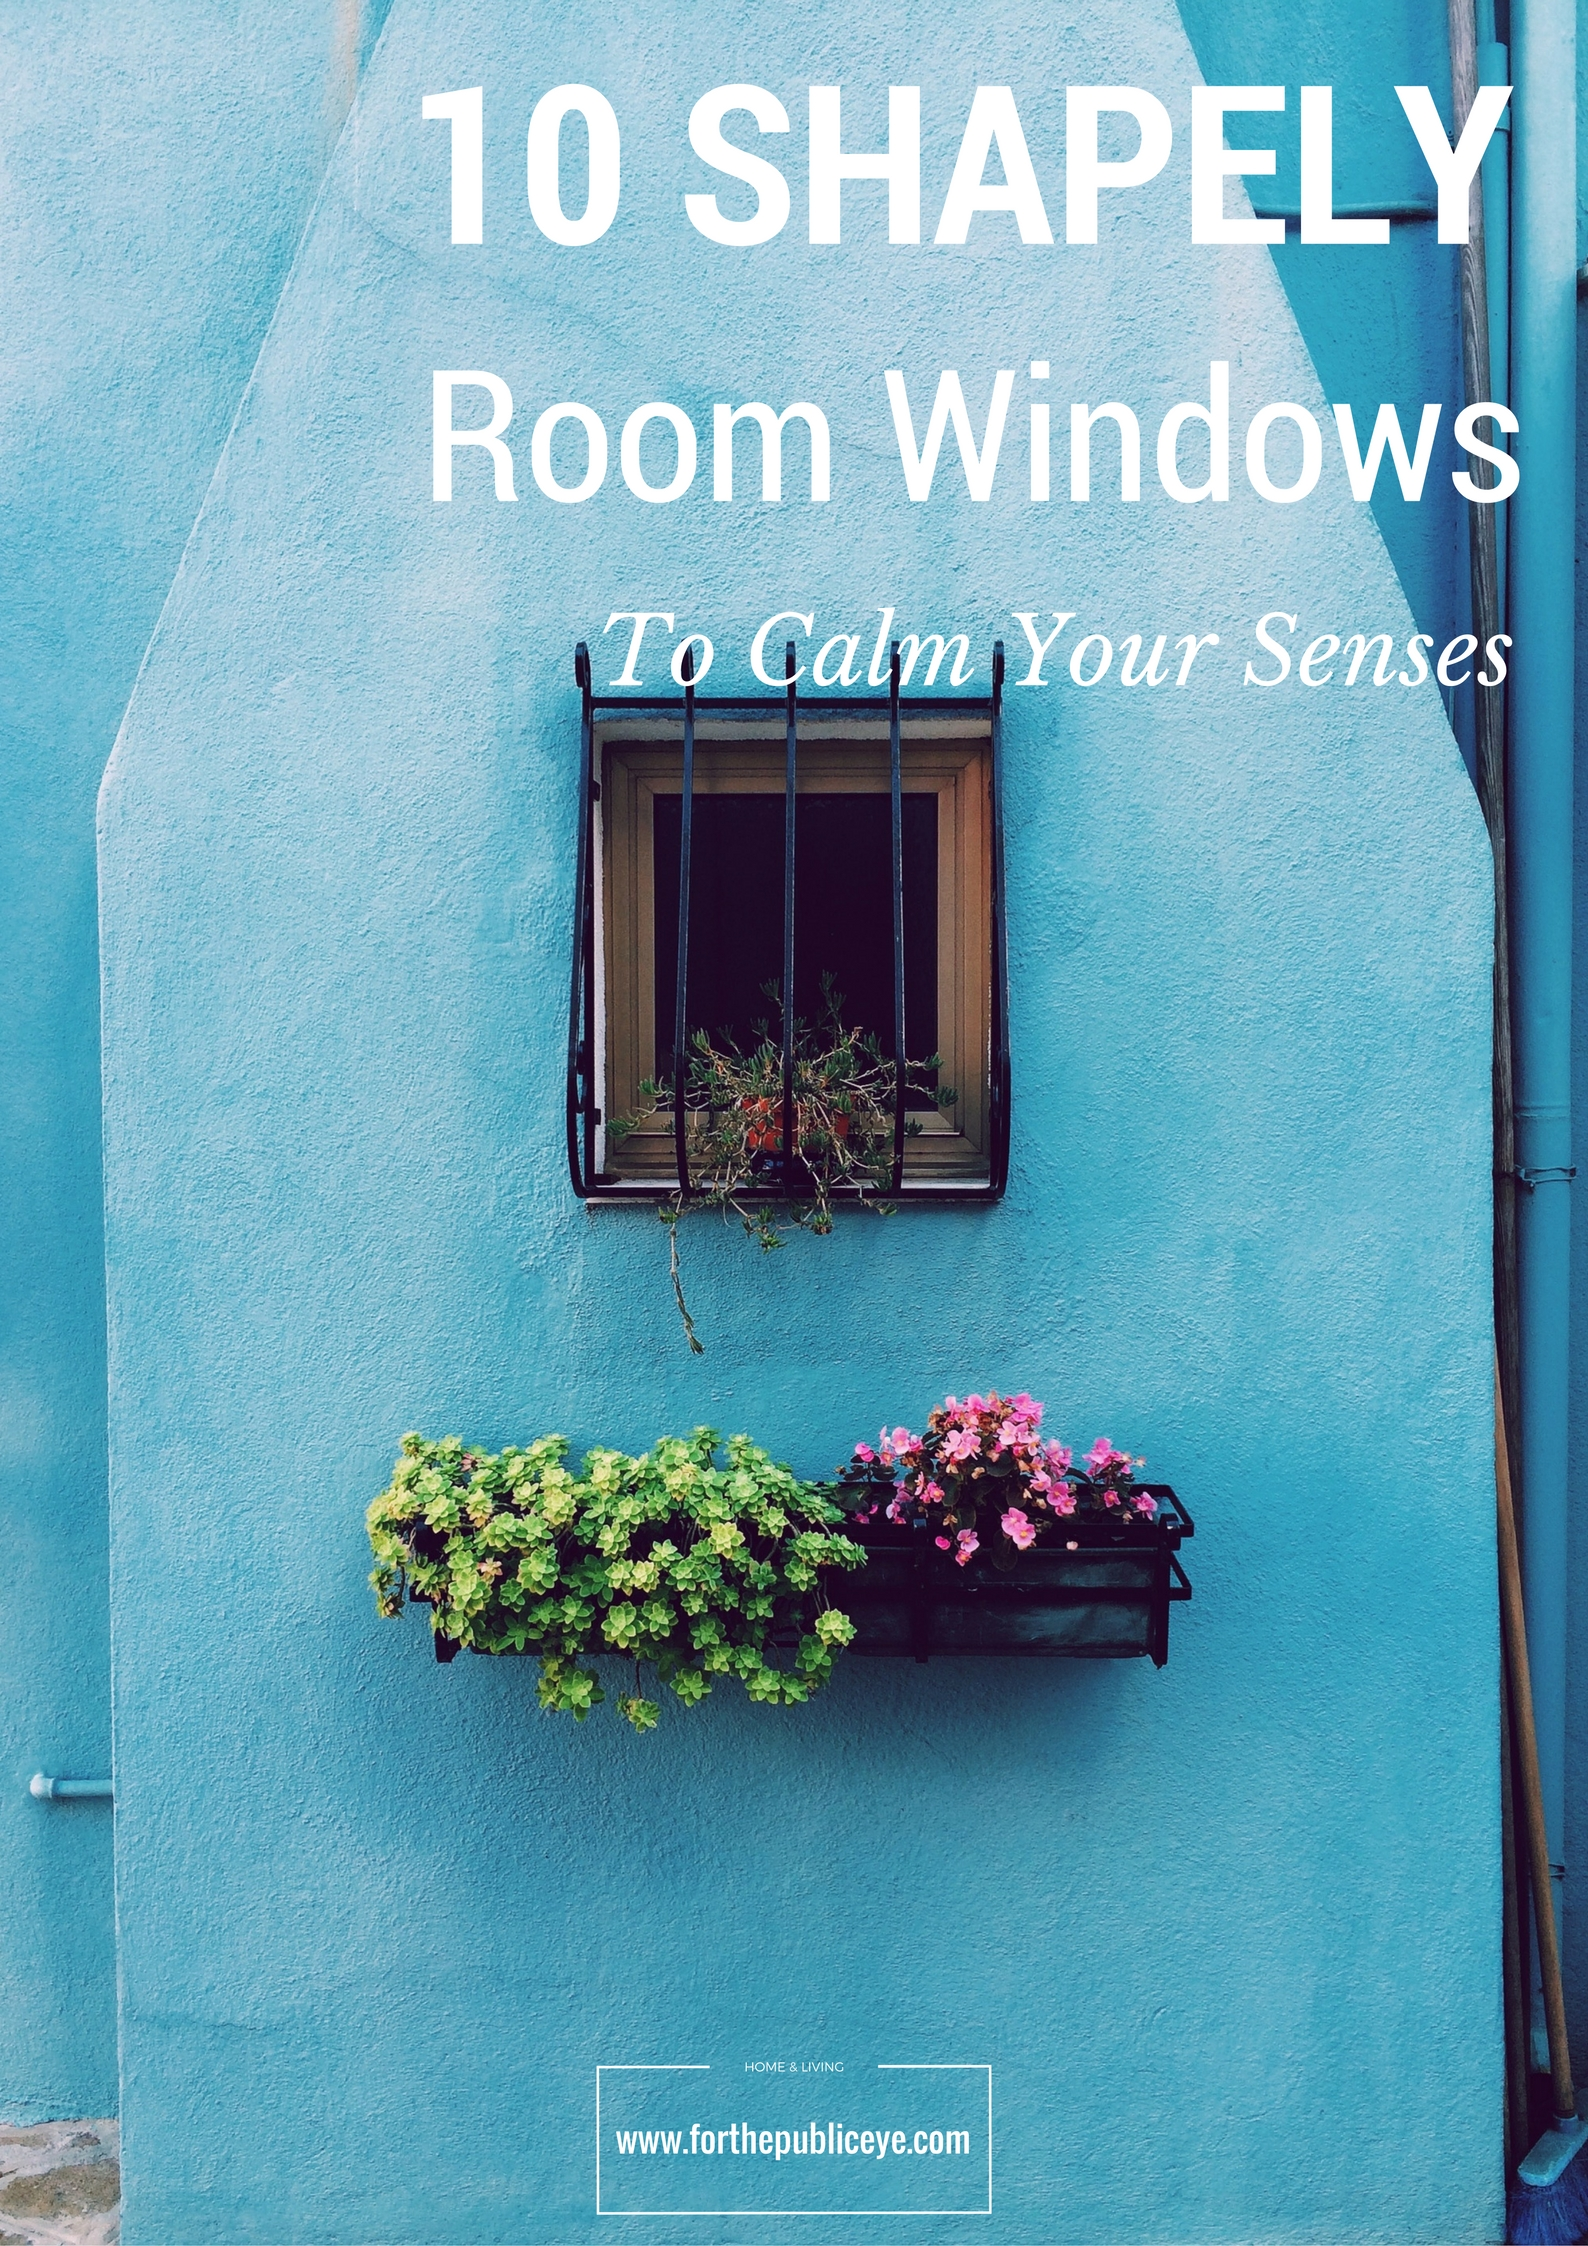 10-shapely-room-windows-to-calm-your-senses-banner